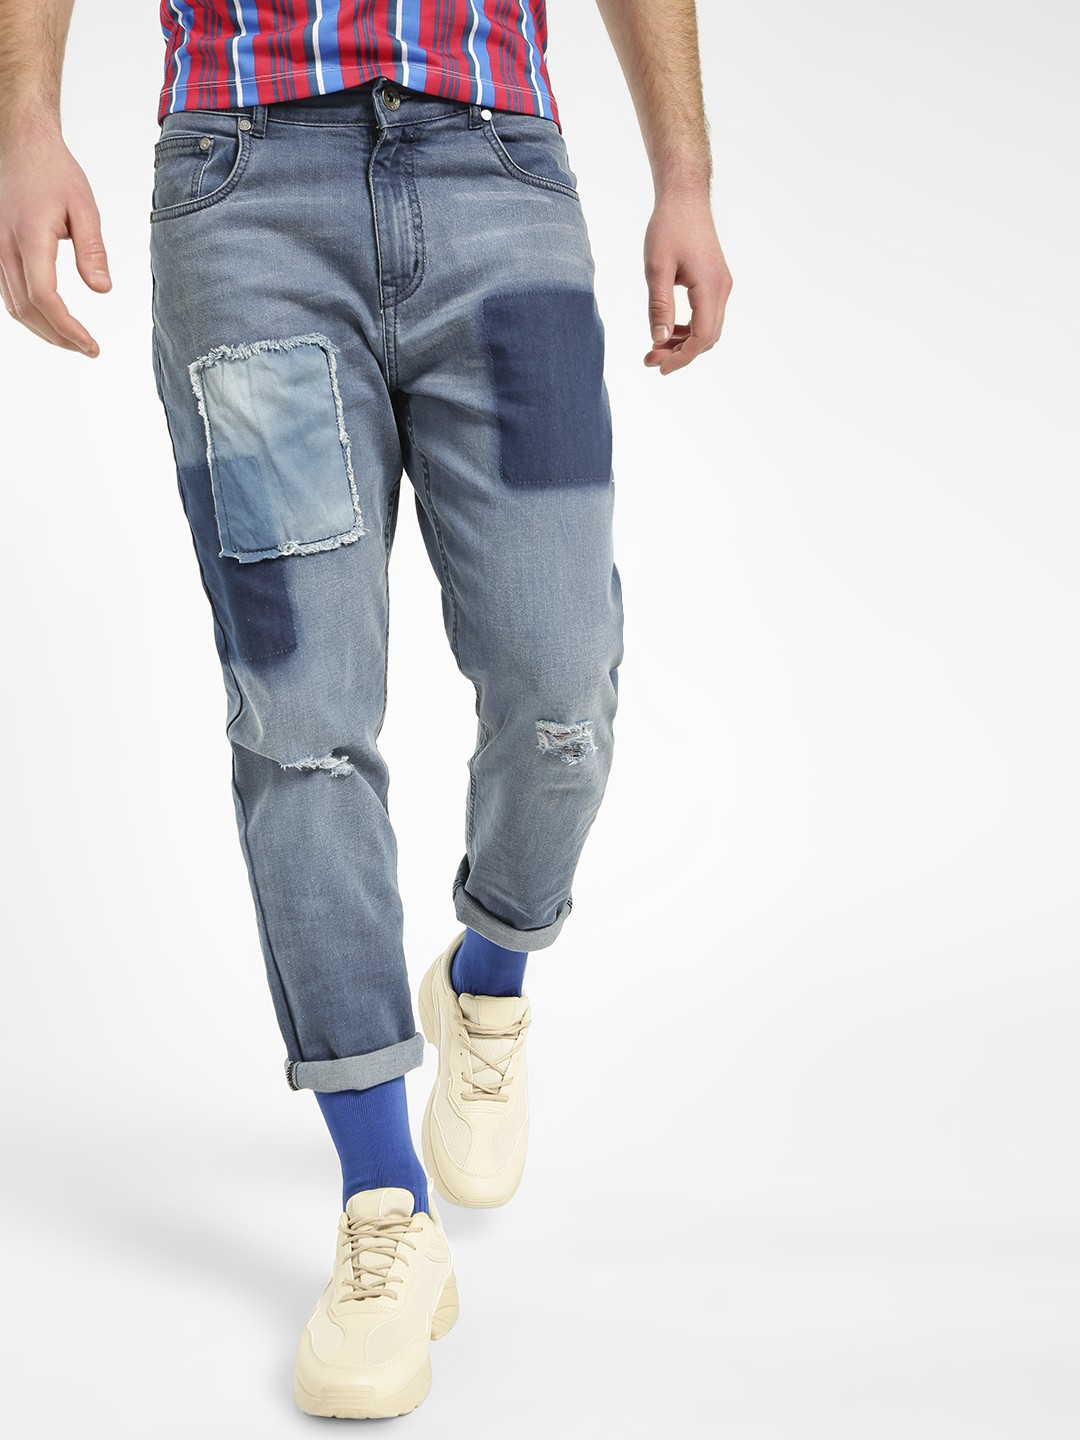 K Denim Blue KOOVS Washed Patch Panel Ripped Jeans 1